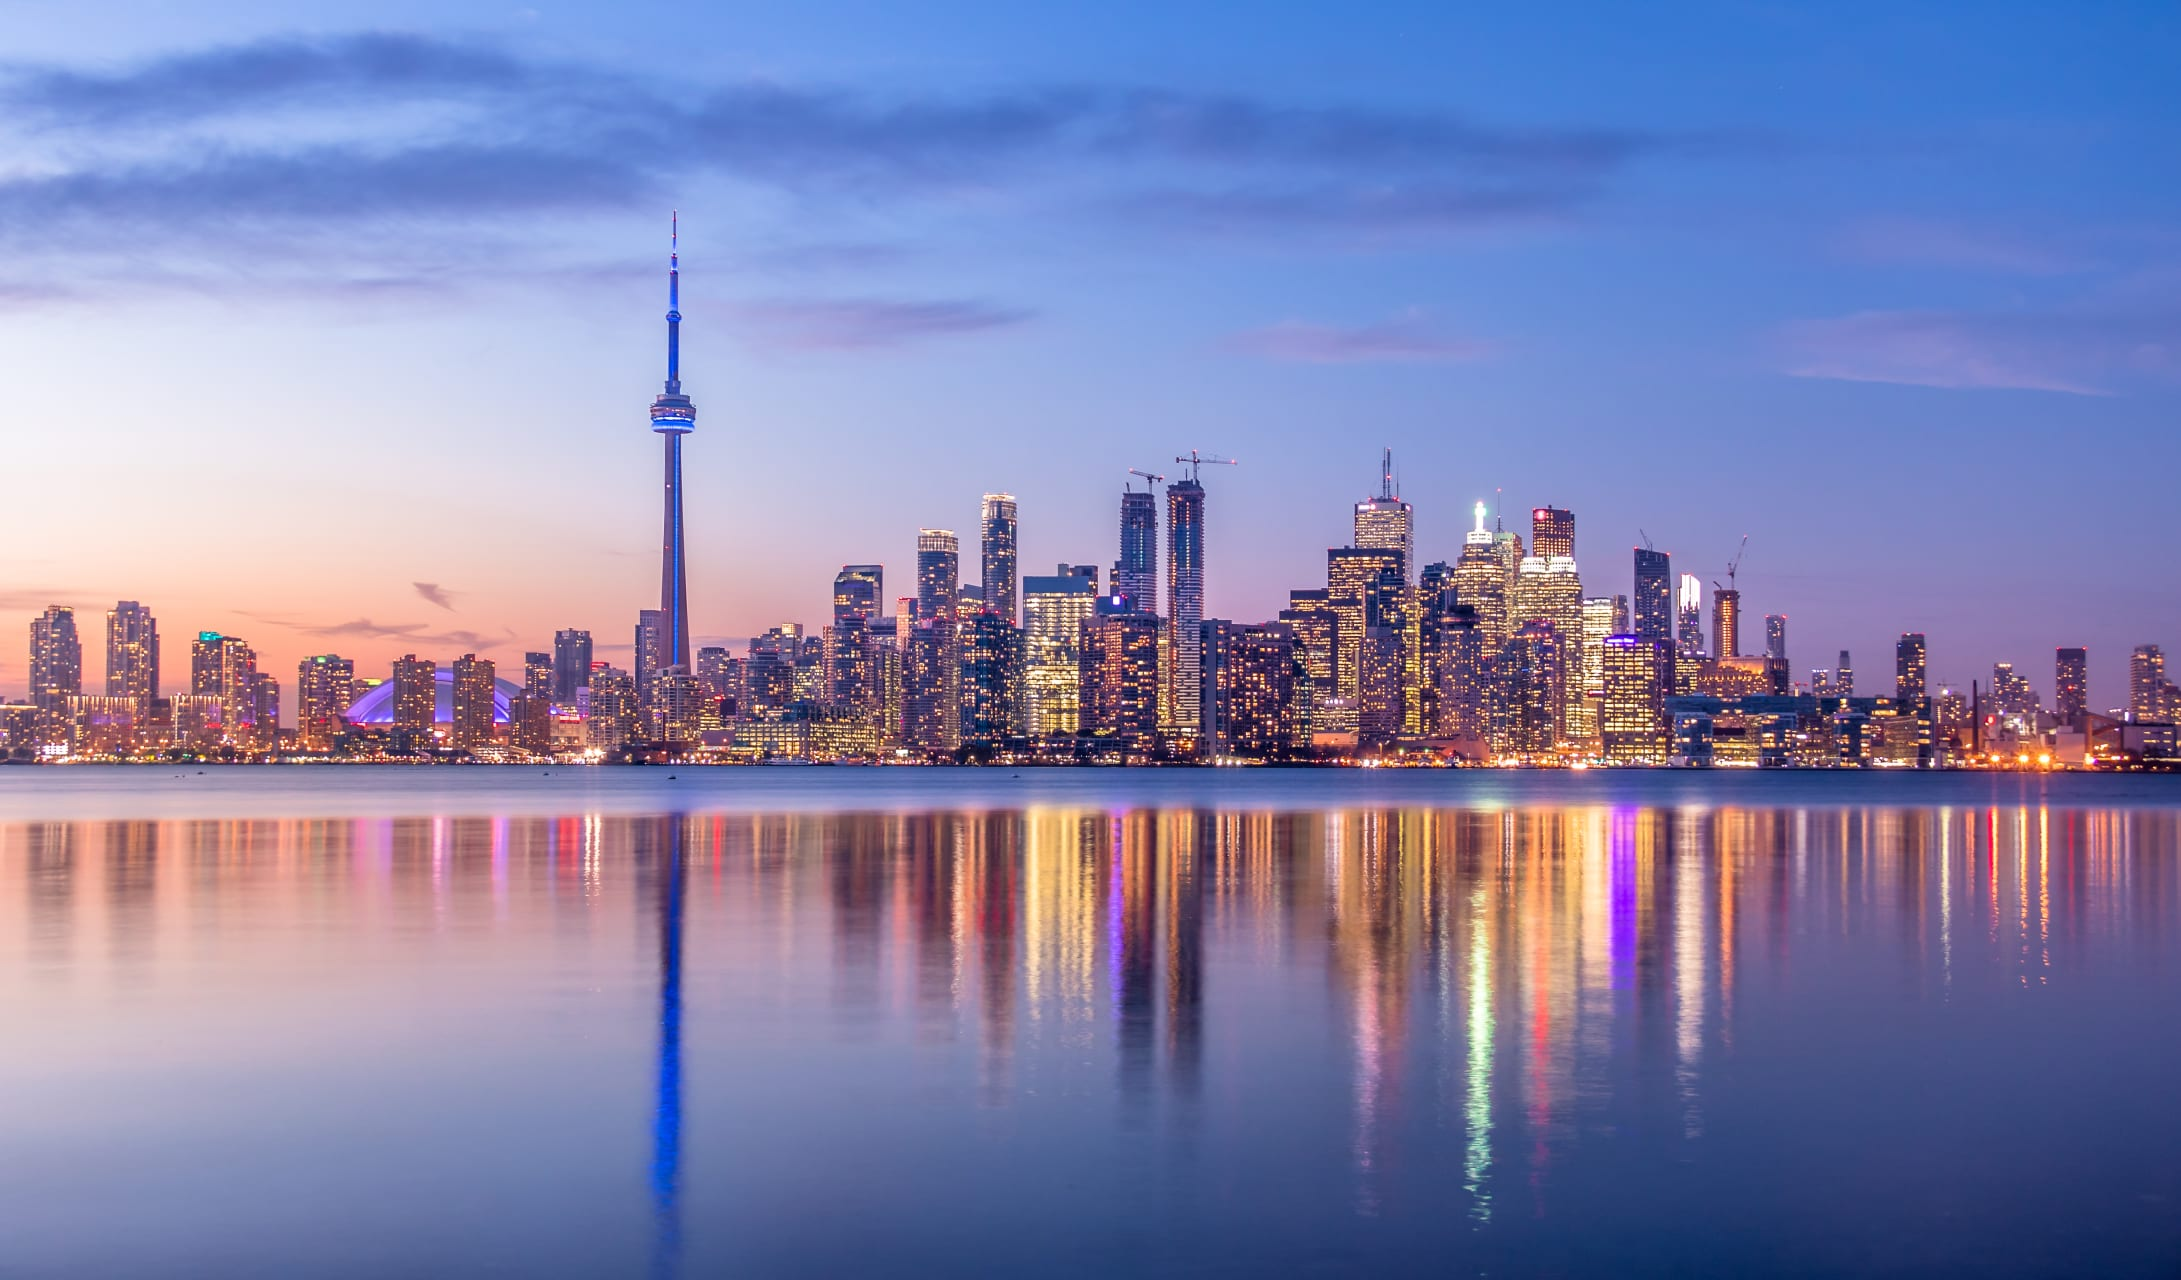 Greater Toronto Area cover image